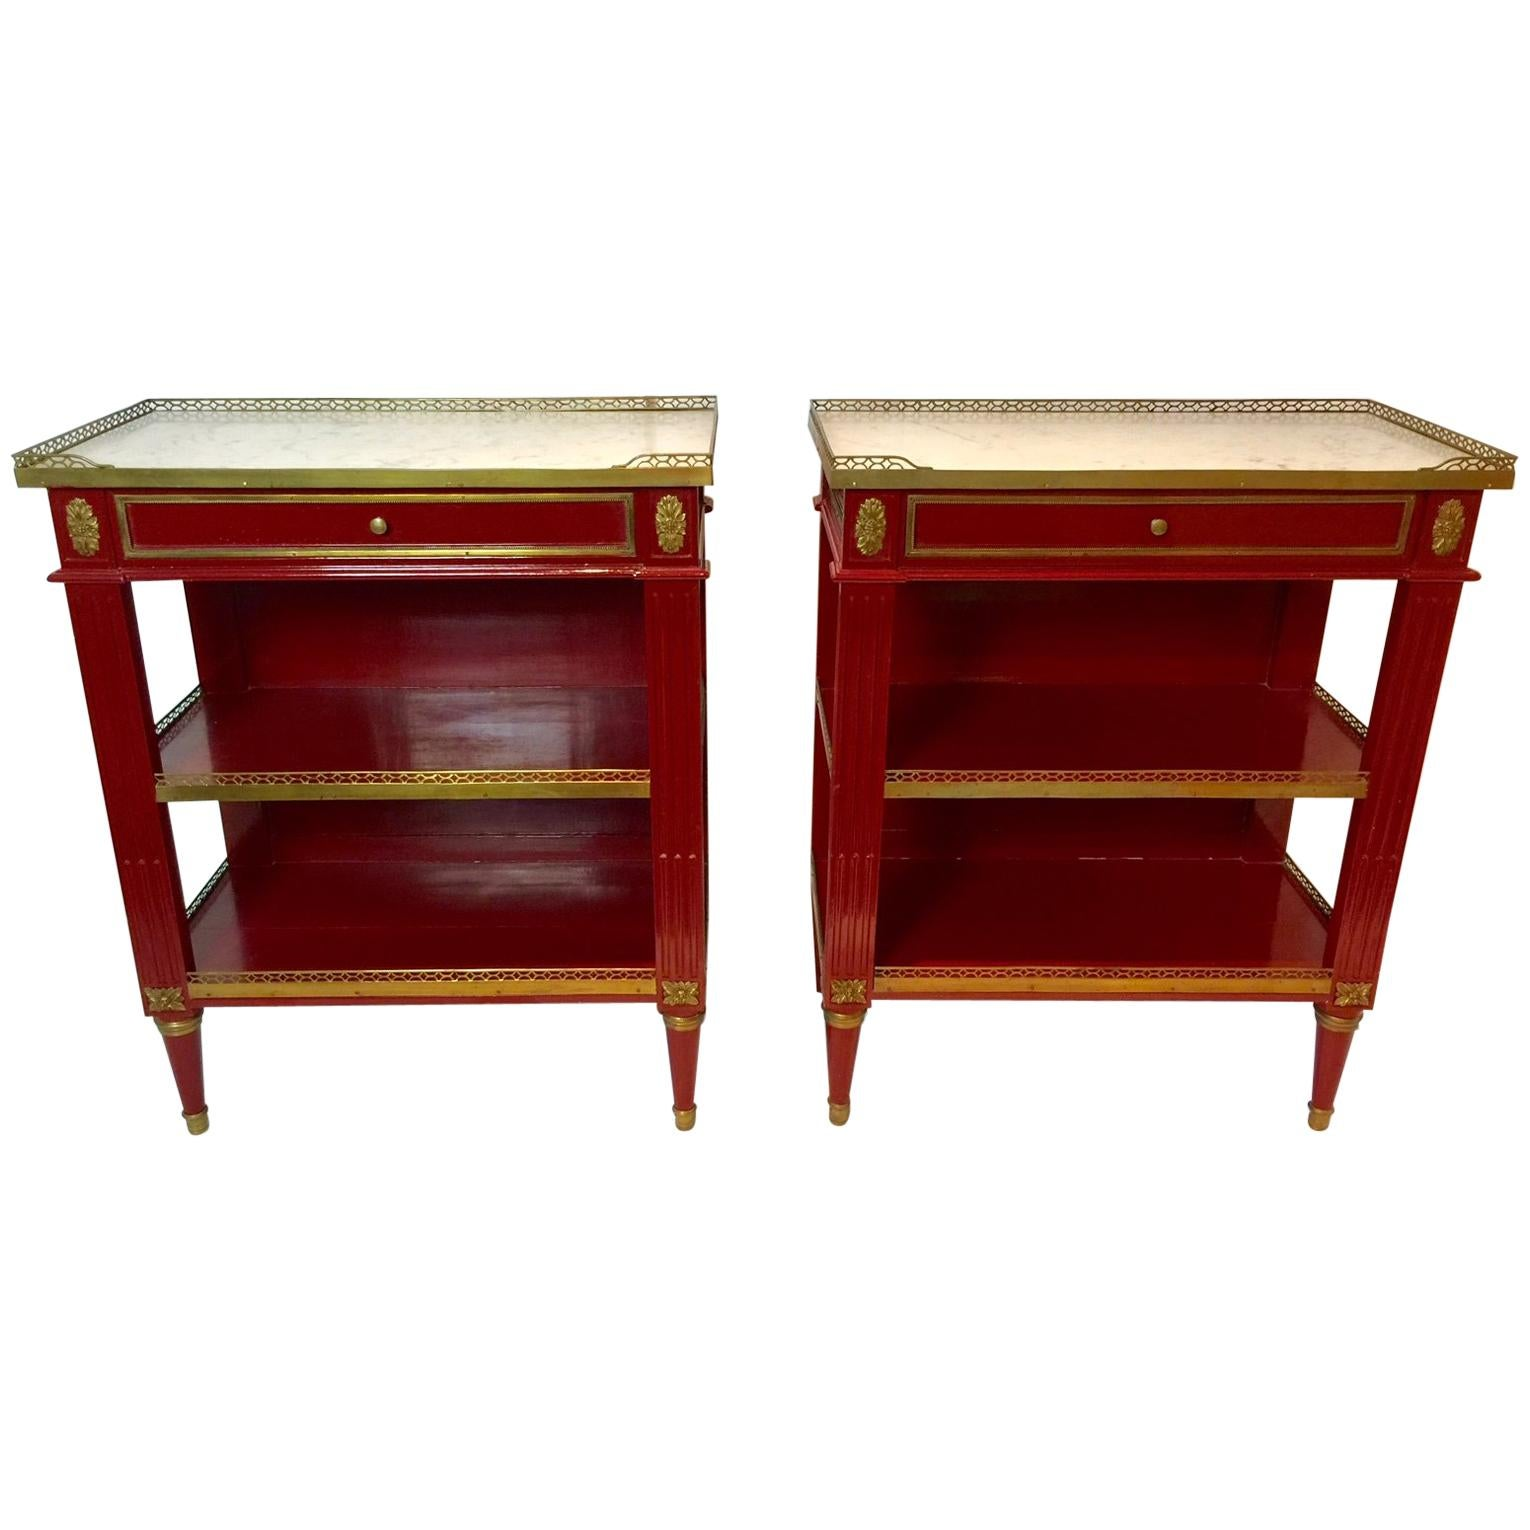 Maison Jansen Pair of Red Marble-Top Side Tables